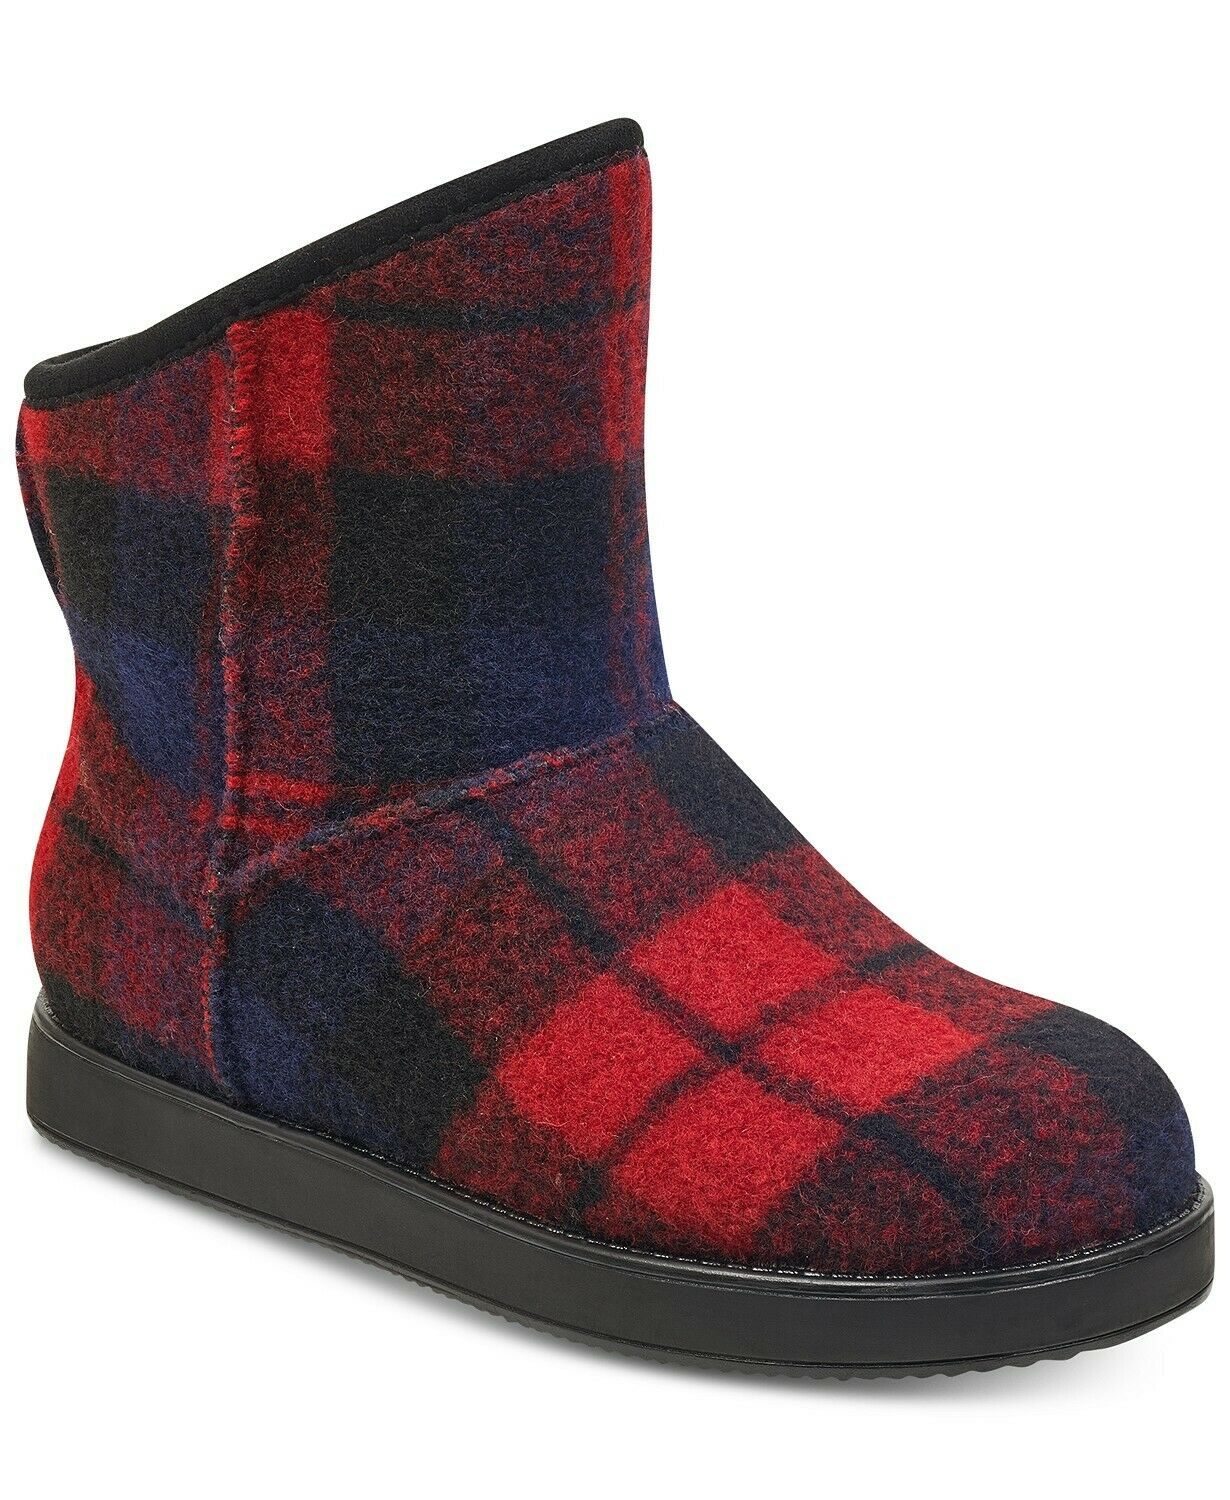 Indigo Road Aylee Boots Lined Winter Boots Slip On Boot 9 M -NEW-